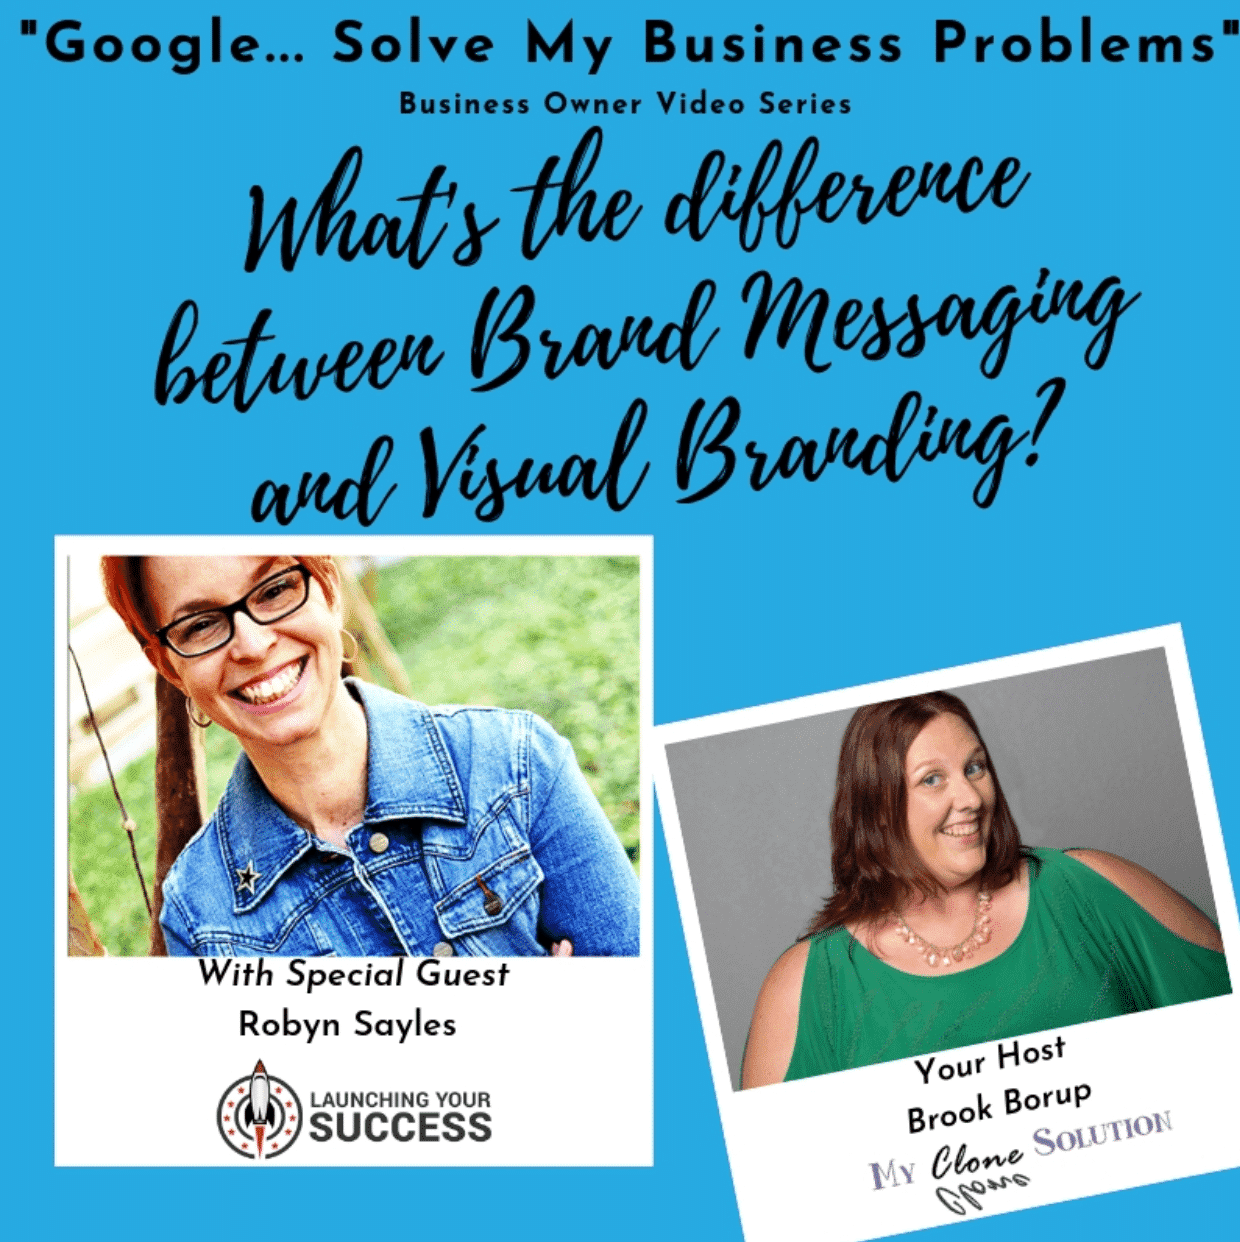 Google-solve-my-business-problems-whats-the-difference-between-brand-messaging-and-visual-branding-Robyn-Sayles